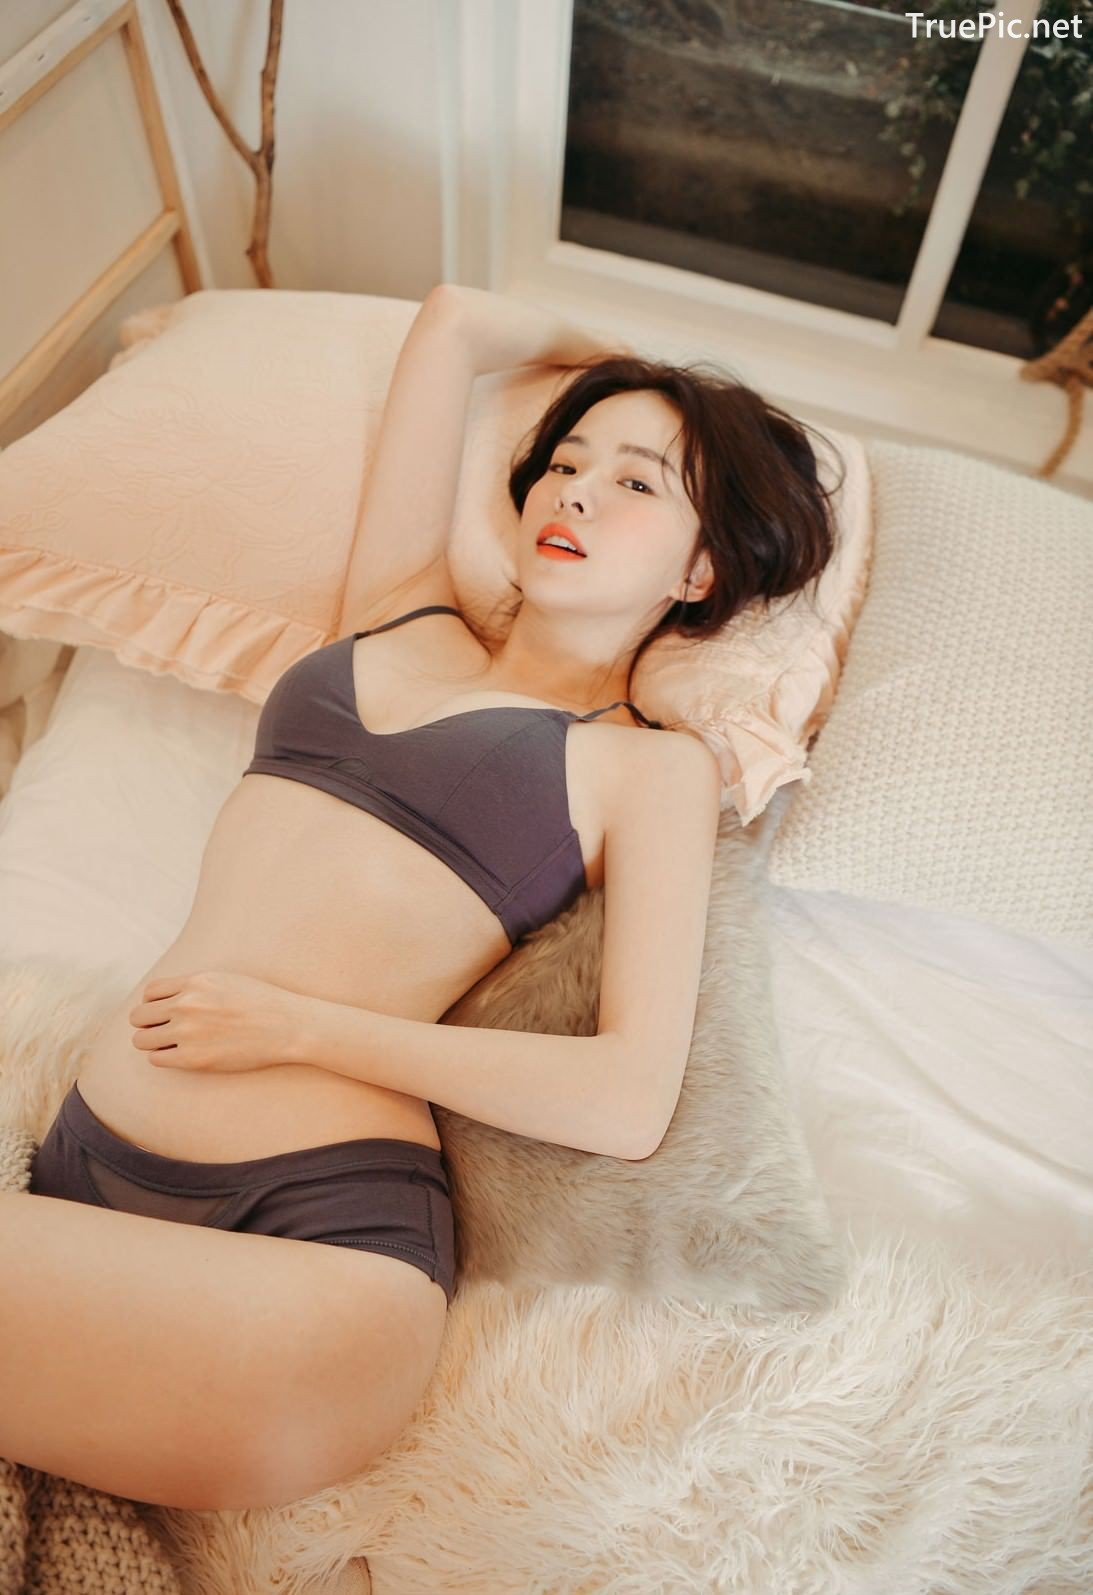 Image-Korean-Lingerie-Queen-Haneul-Lingerie-Shop-Haneul-Colection-TruePic.net- Picture-9